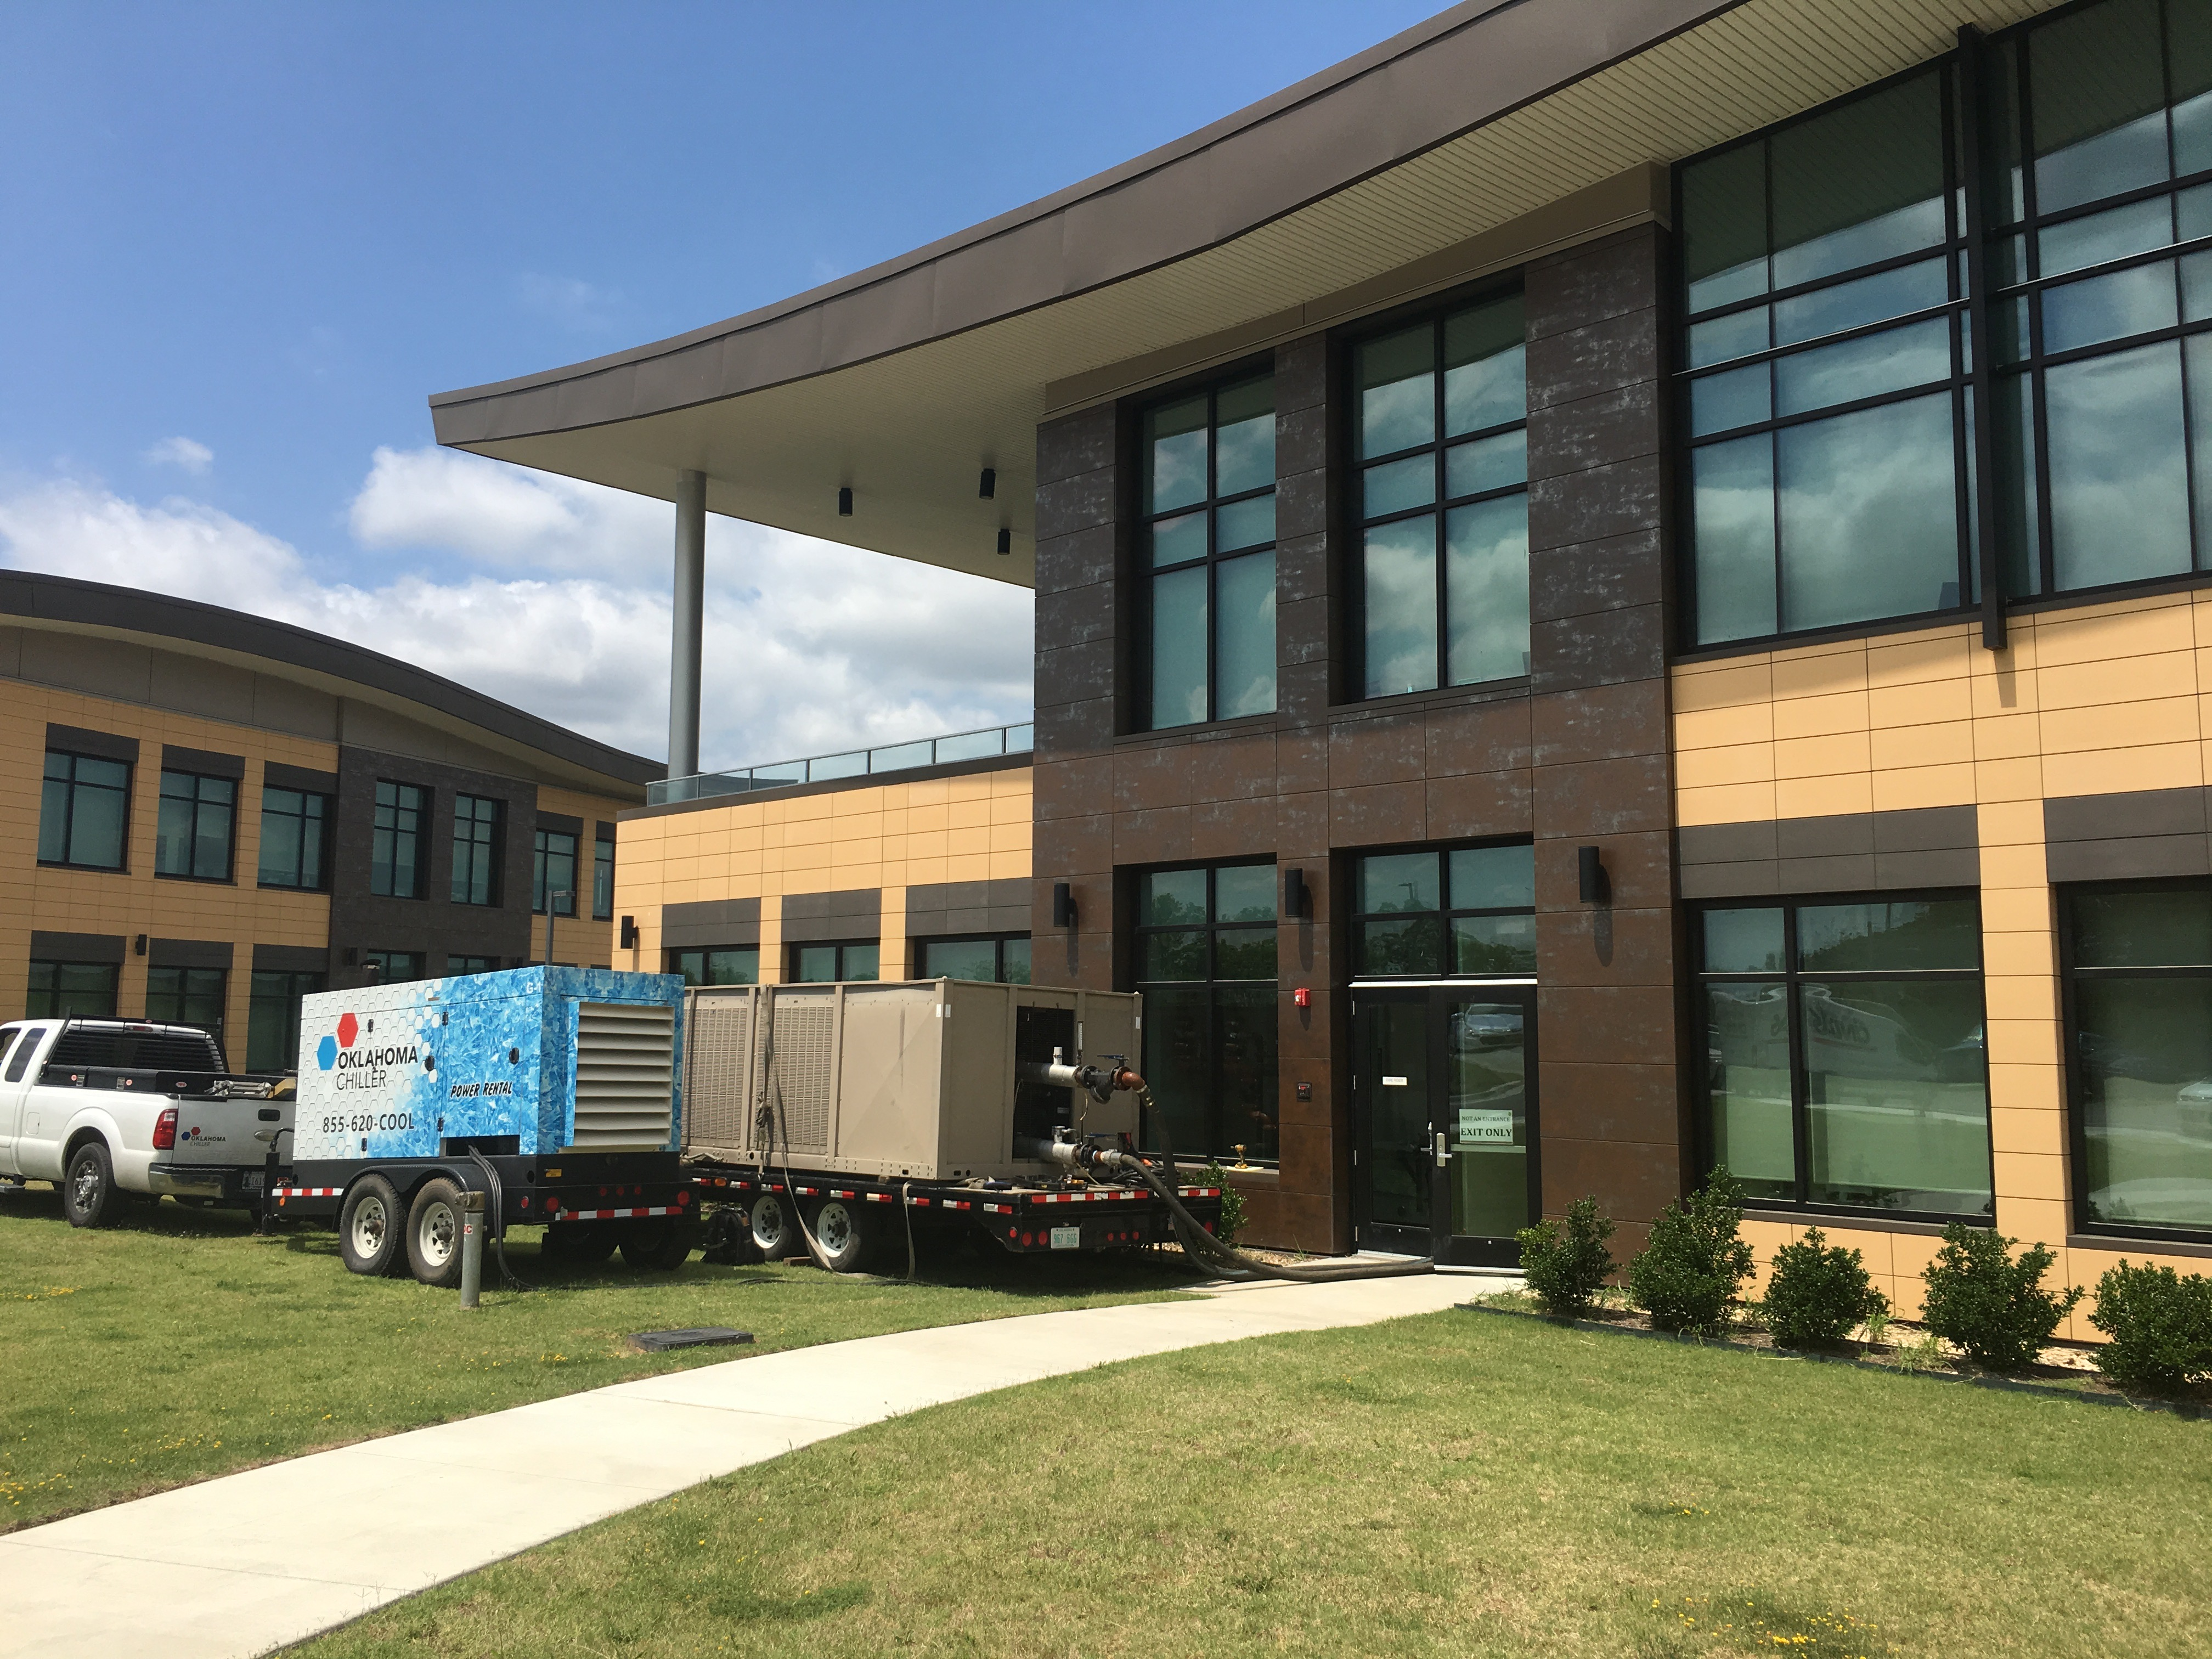 Osage Nation Welcome Center air conditioning under repair